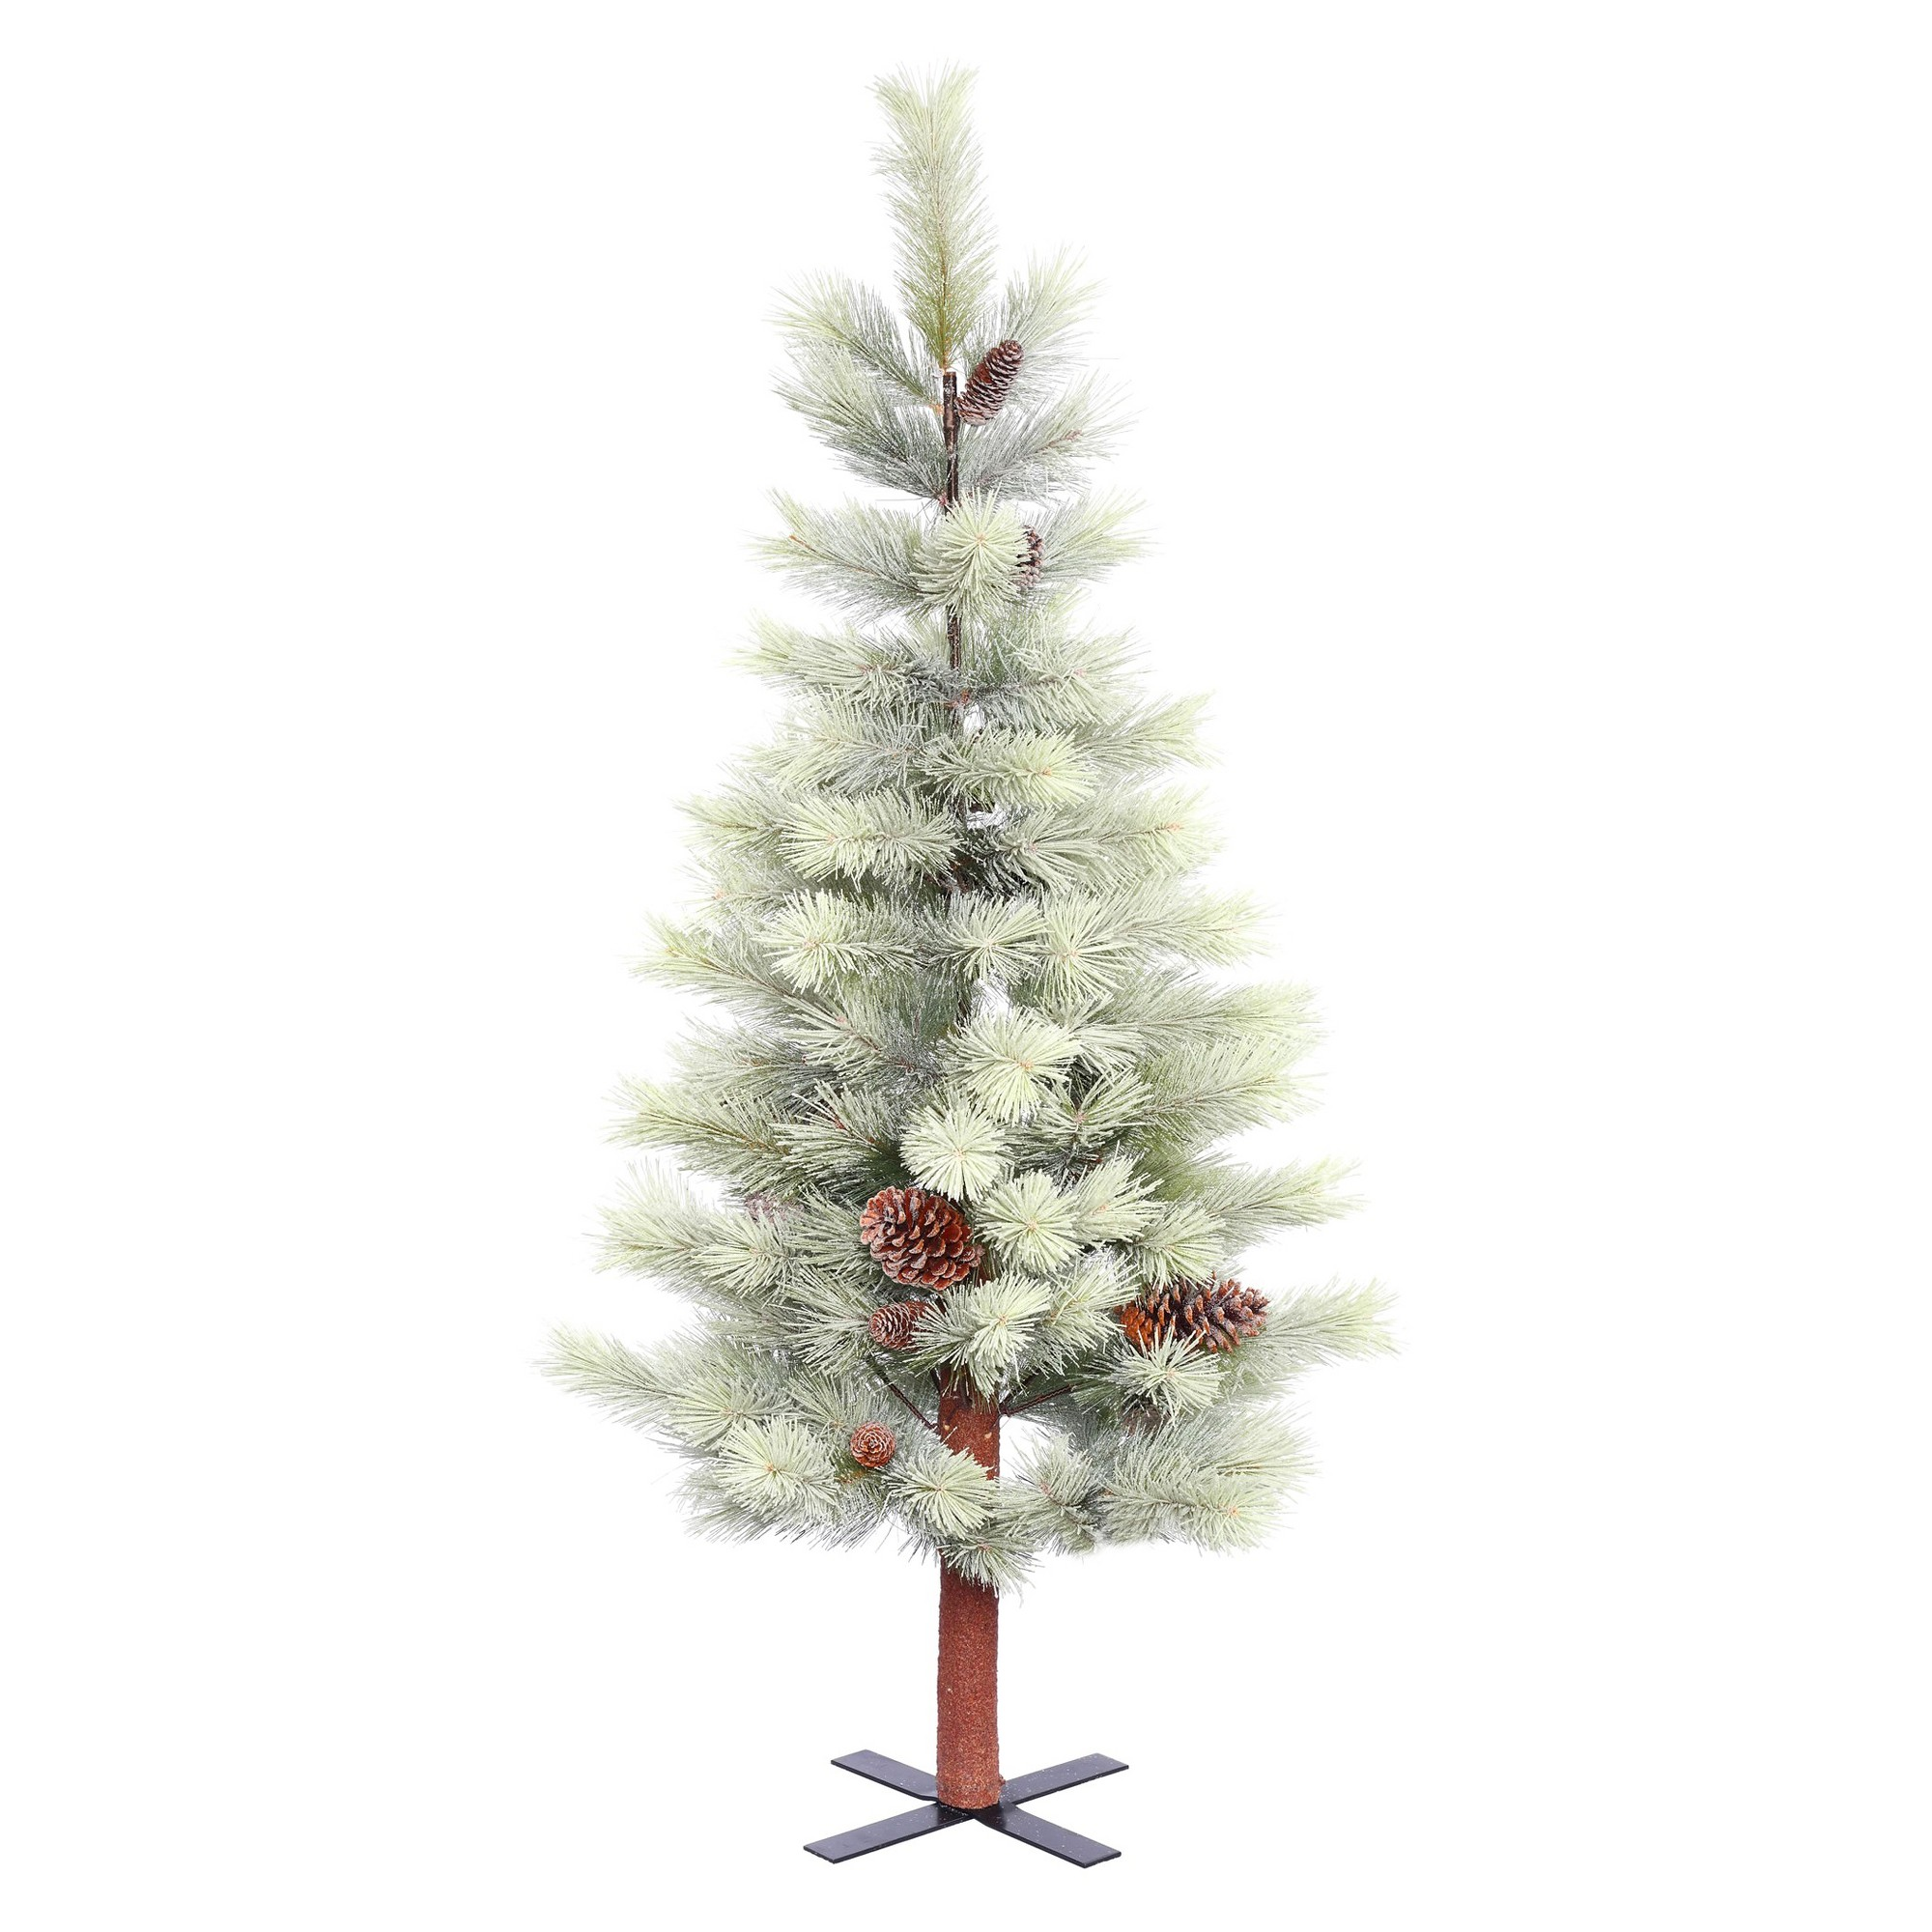 Frosted Slim Christmas Tree: 4.5' Unlit Artificial Christmas Tree Frosted Bellevue